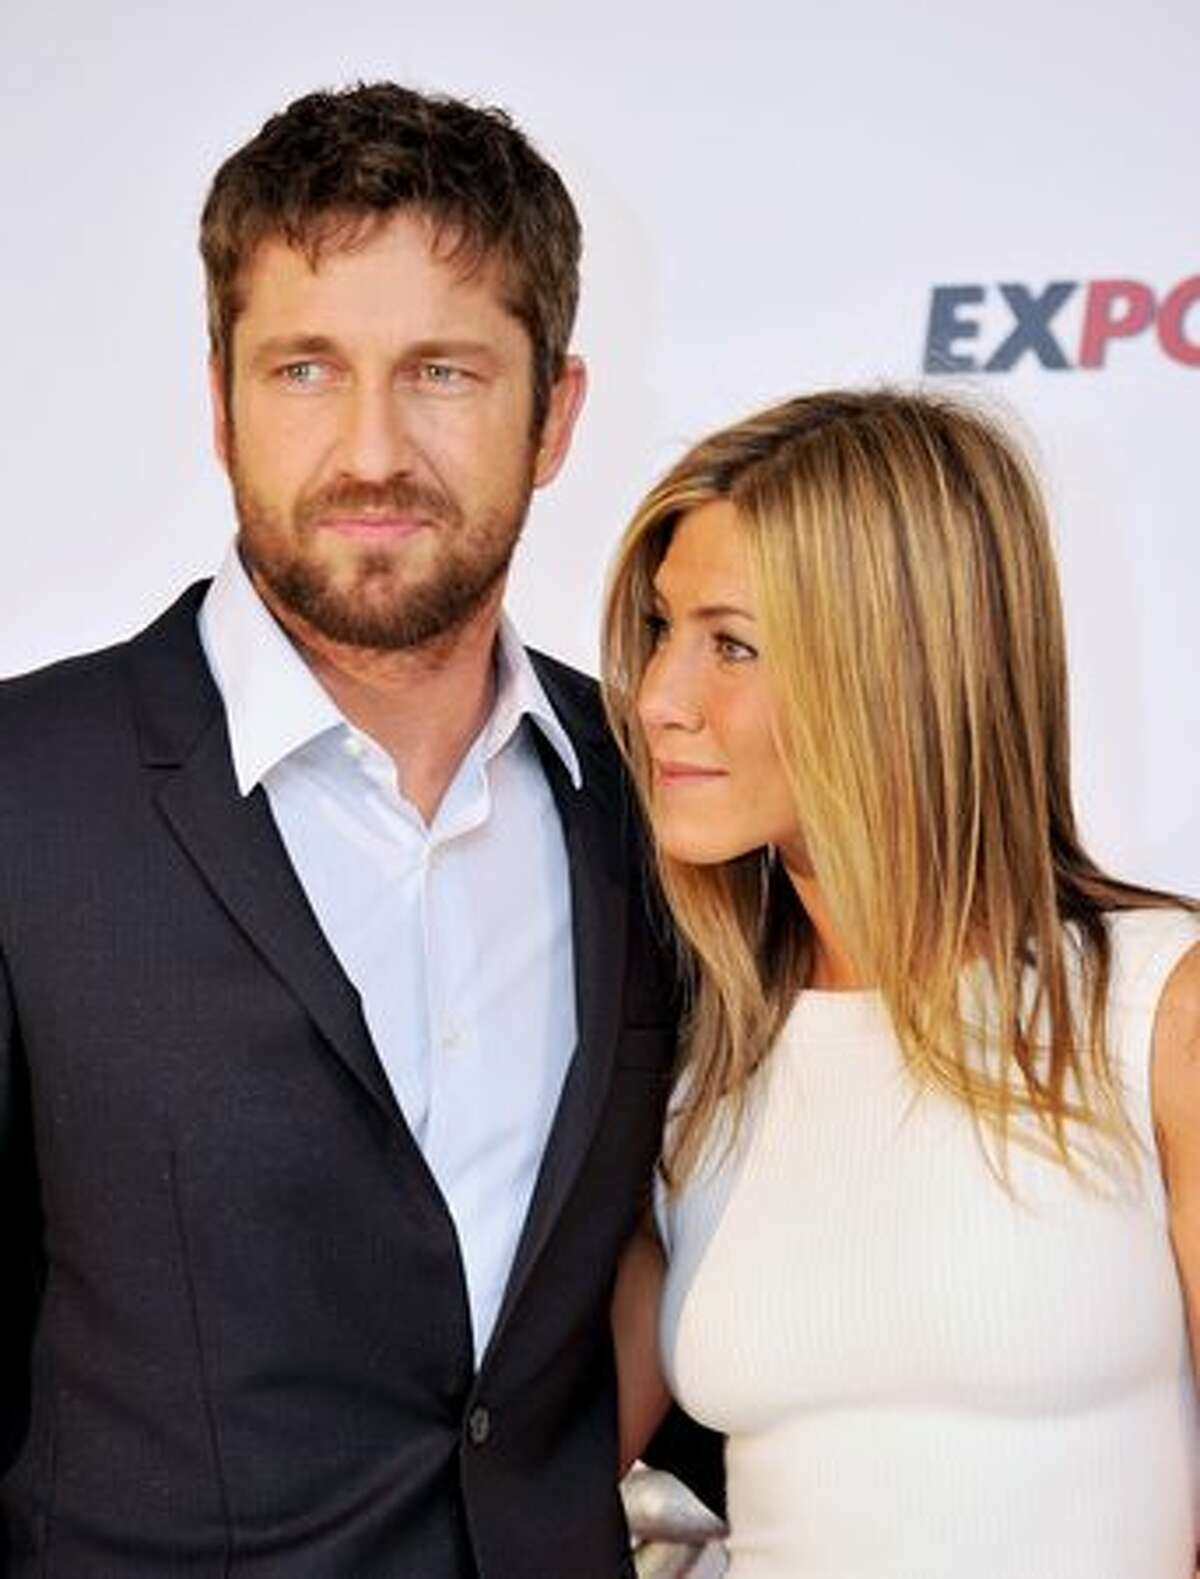 """Actor Gerard Butler and actress Jennifer Aniston attend """"Exposados"""" (The Bounty Hunter) photocall at the Villamagna Hotel in Madrid, Spain."""